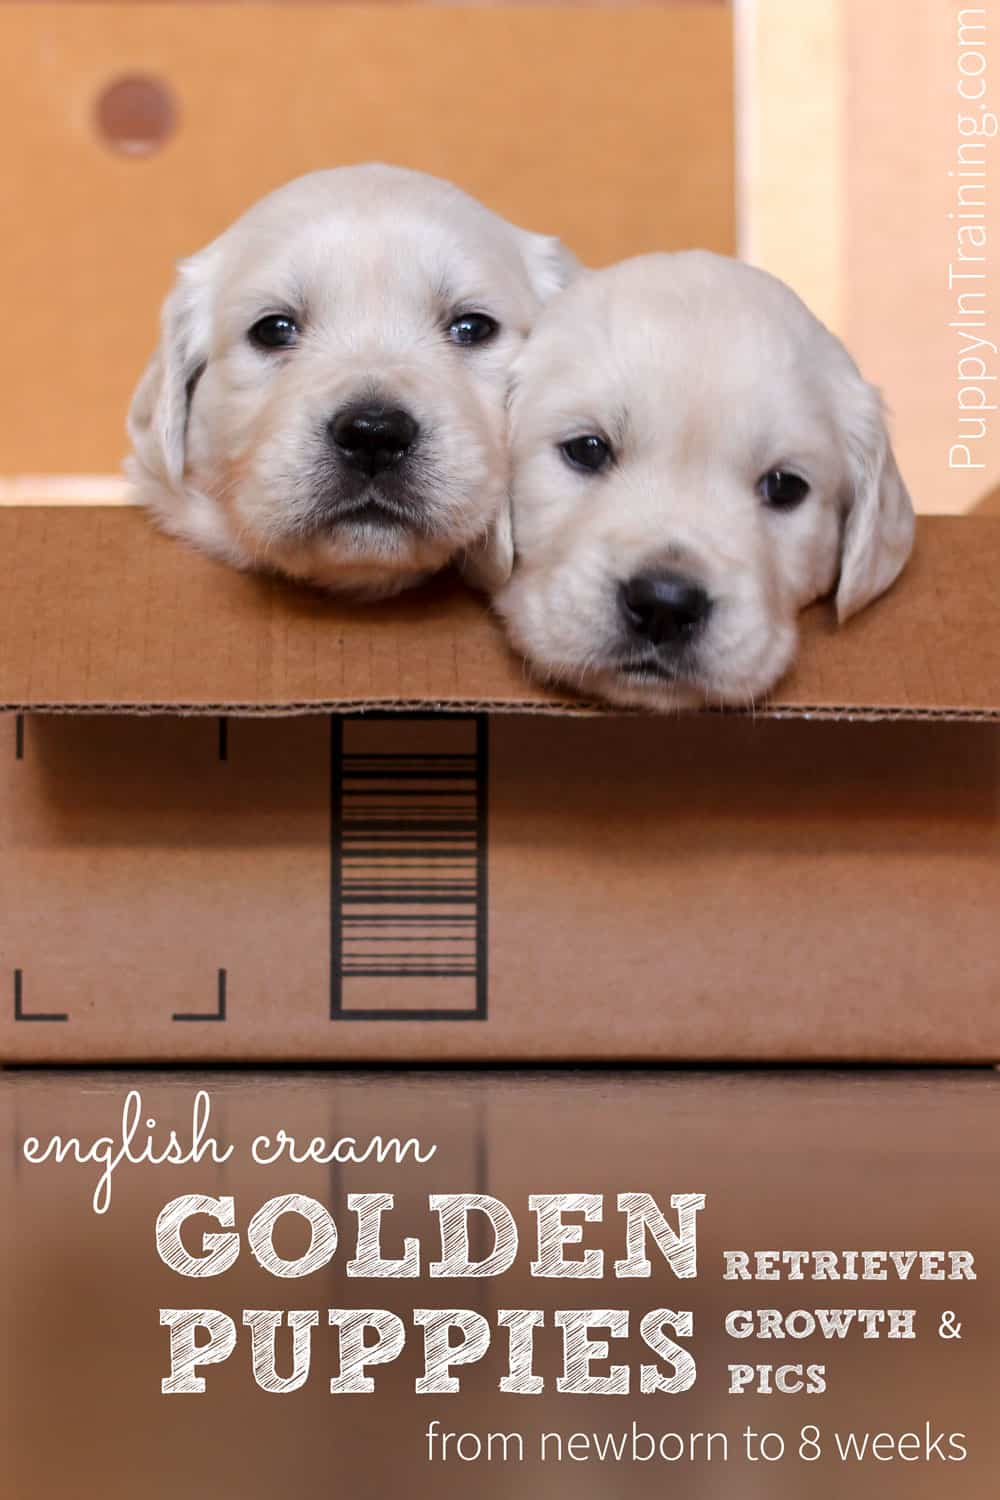 Two English Cream Golden Retriever puppies sitting in a box.